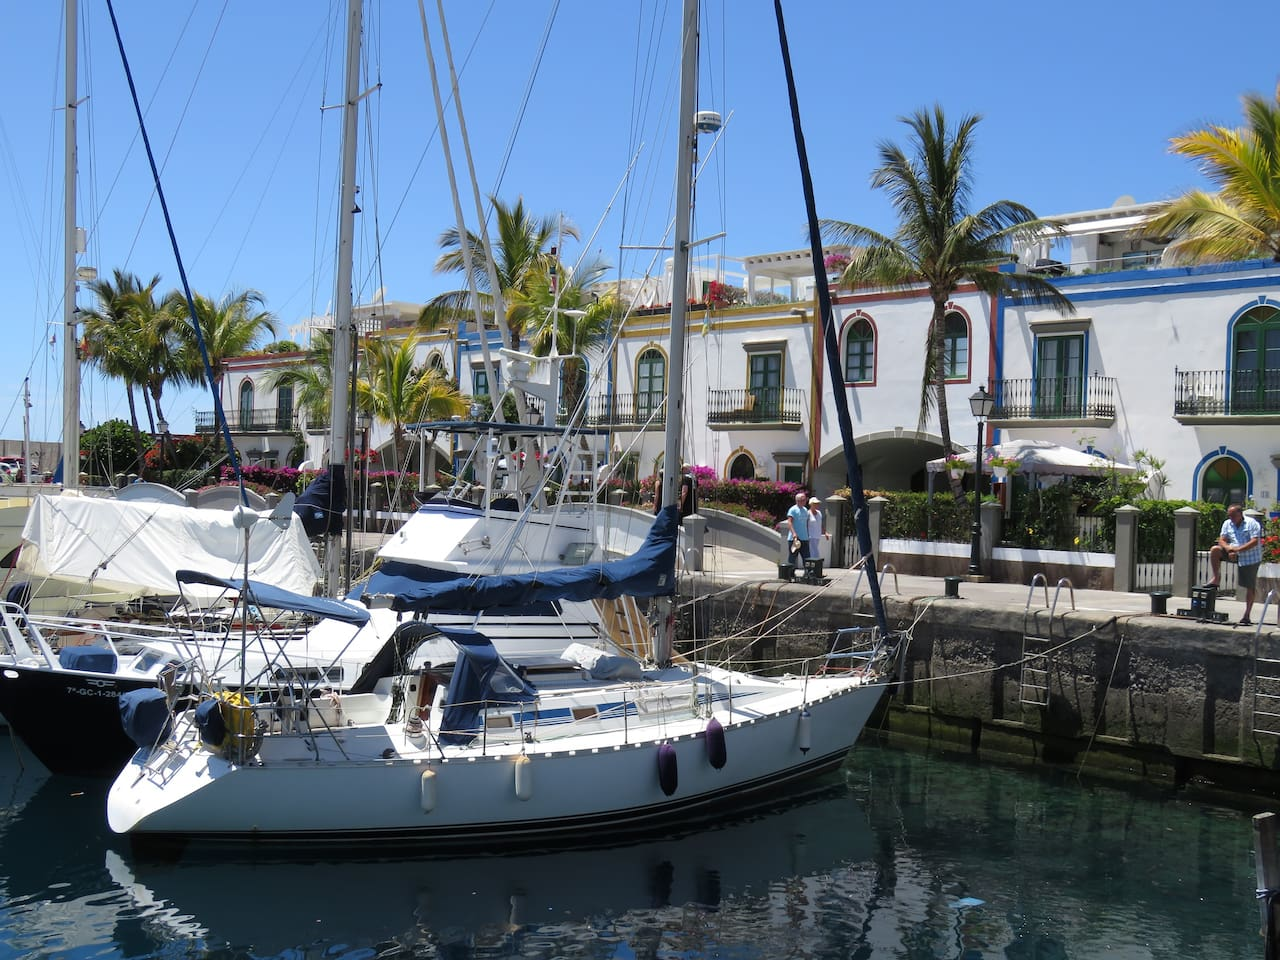 Wonderful local area with great scenery and locally sourced seafood (Puerto De Mogán)